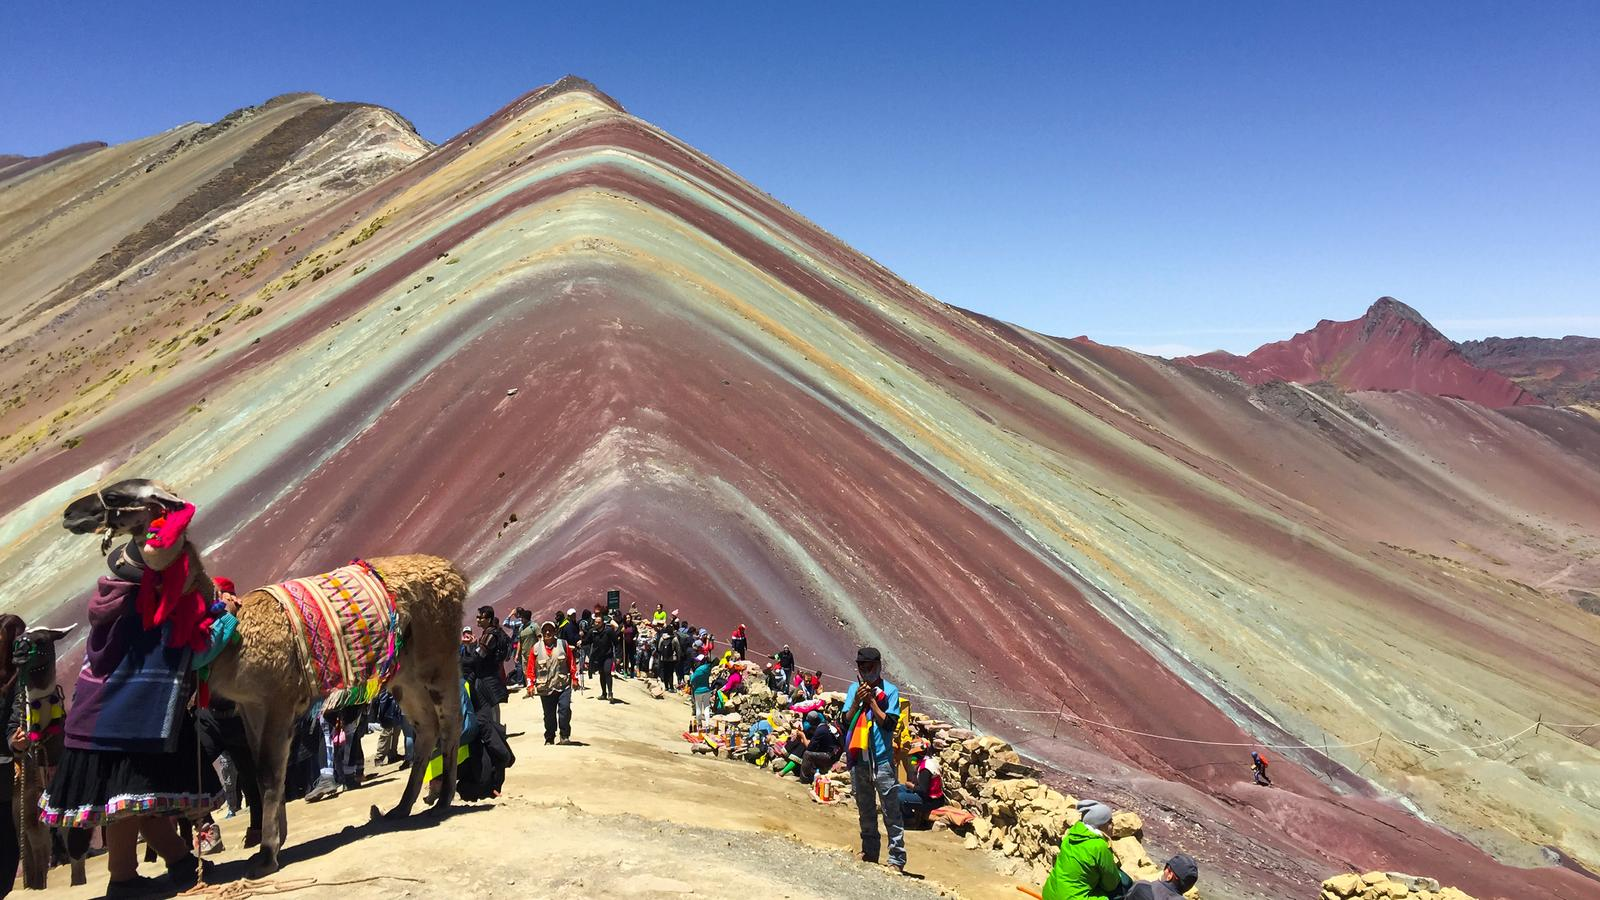 Tourists at the Rainbow Mountain in Peru